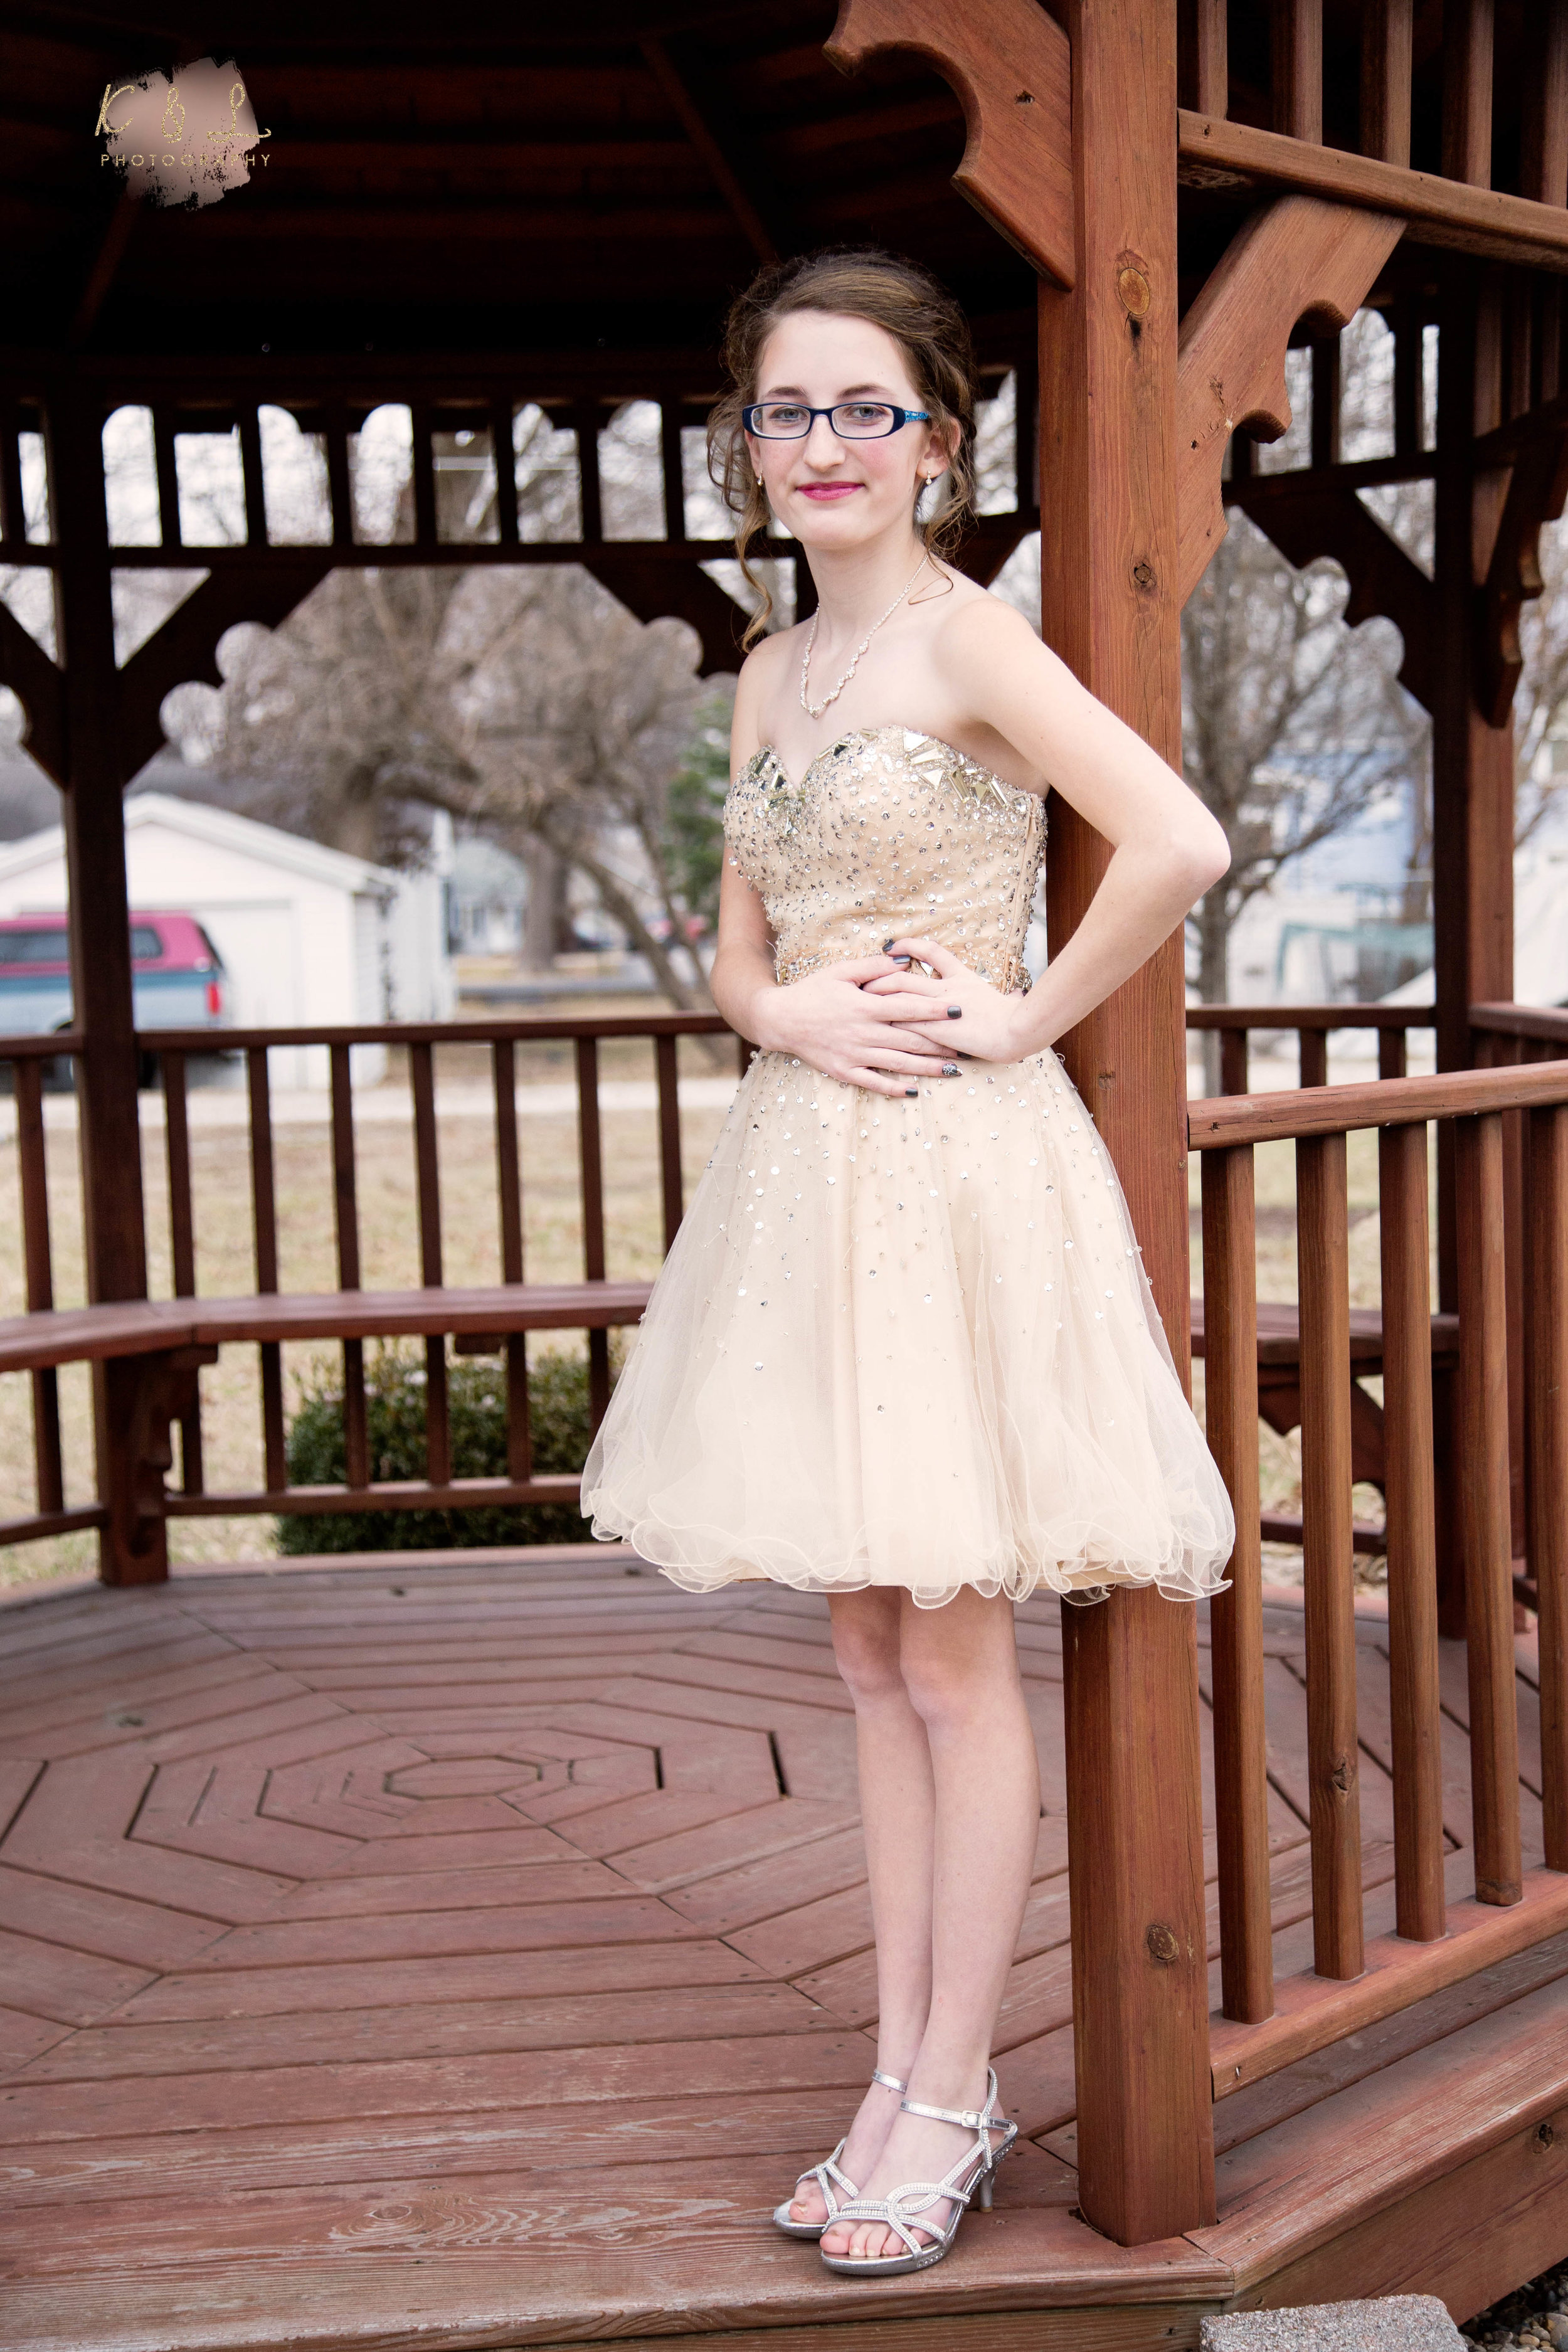 Madison_Winter_Formal_2017-12.jpg